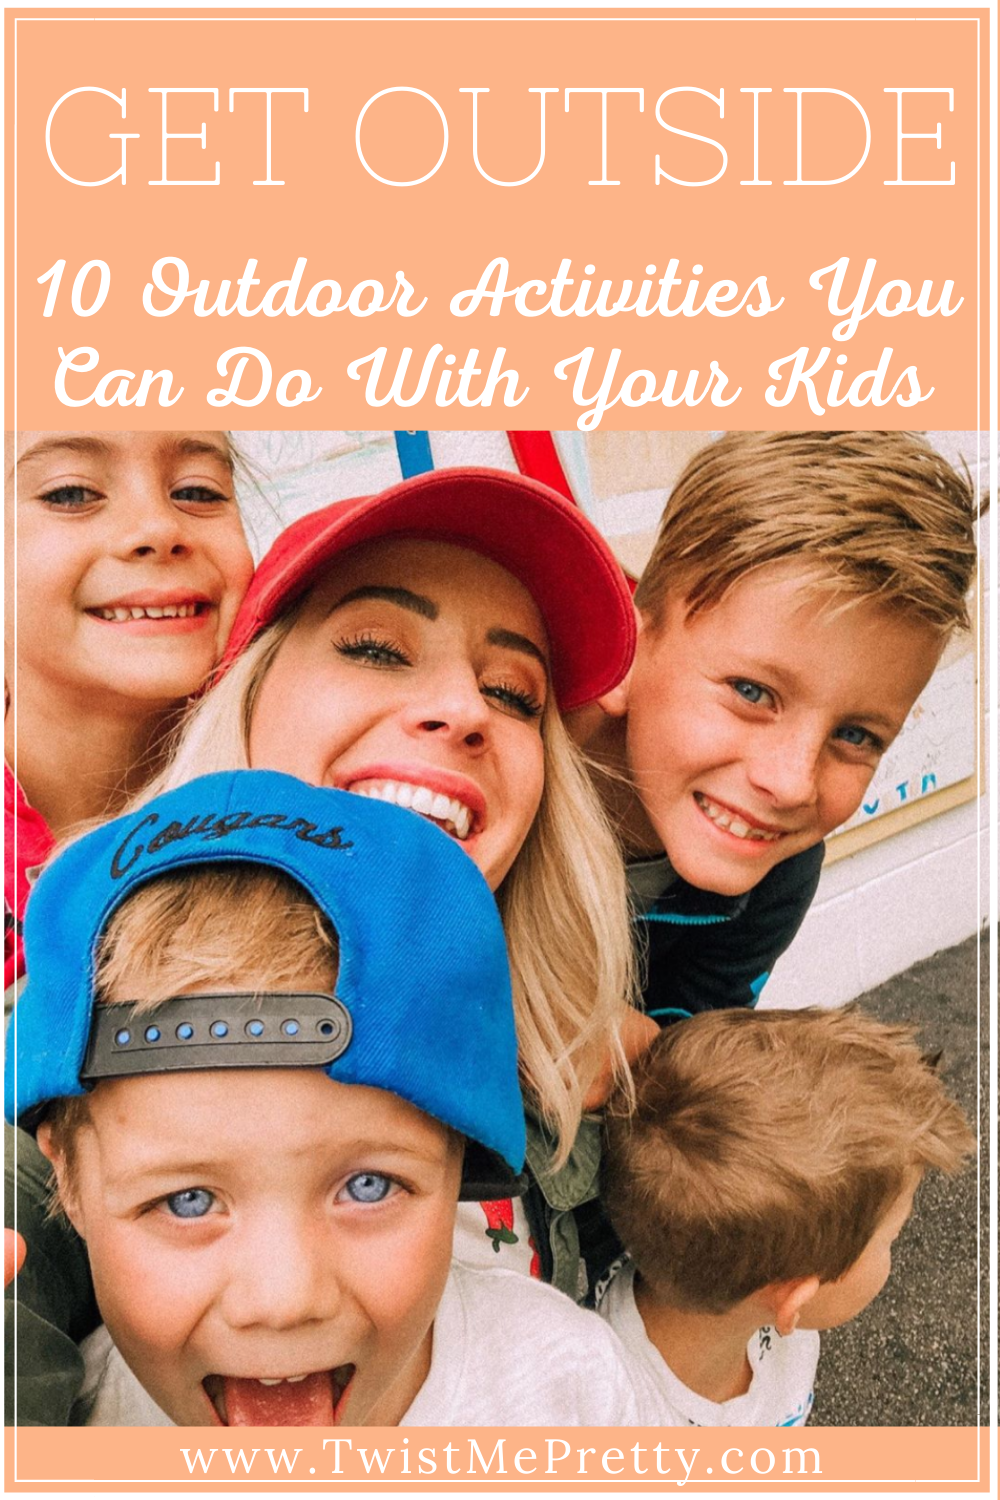 Get outside! 10 outdoor activities you can do with your kids! www.twistmepretty.com